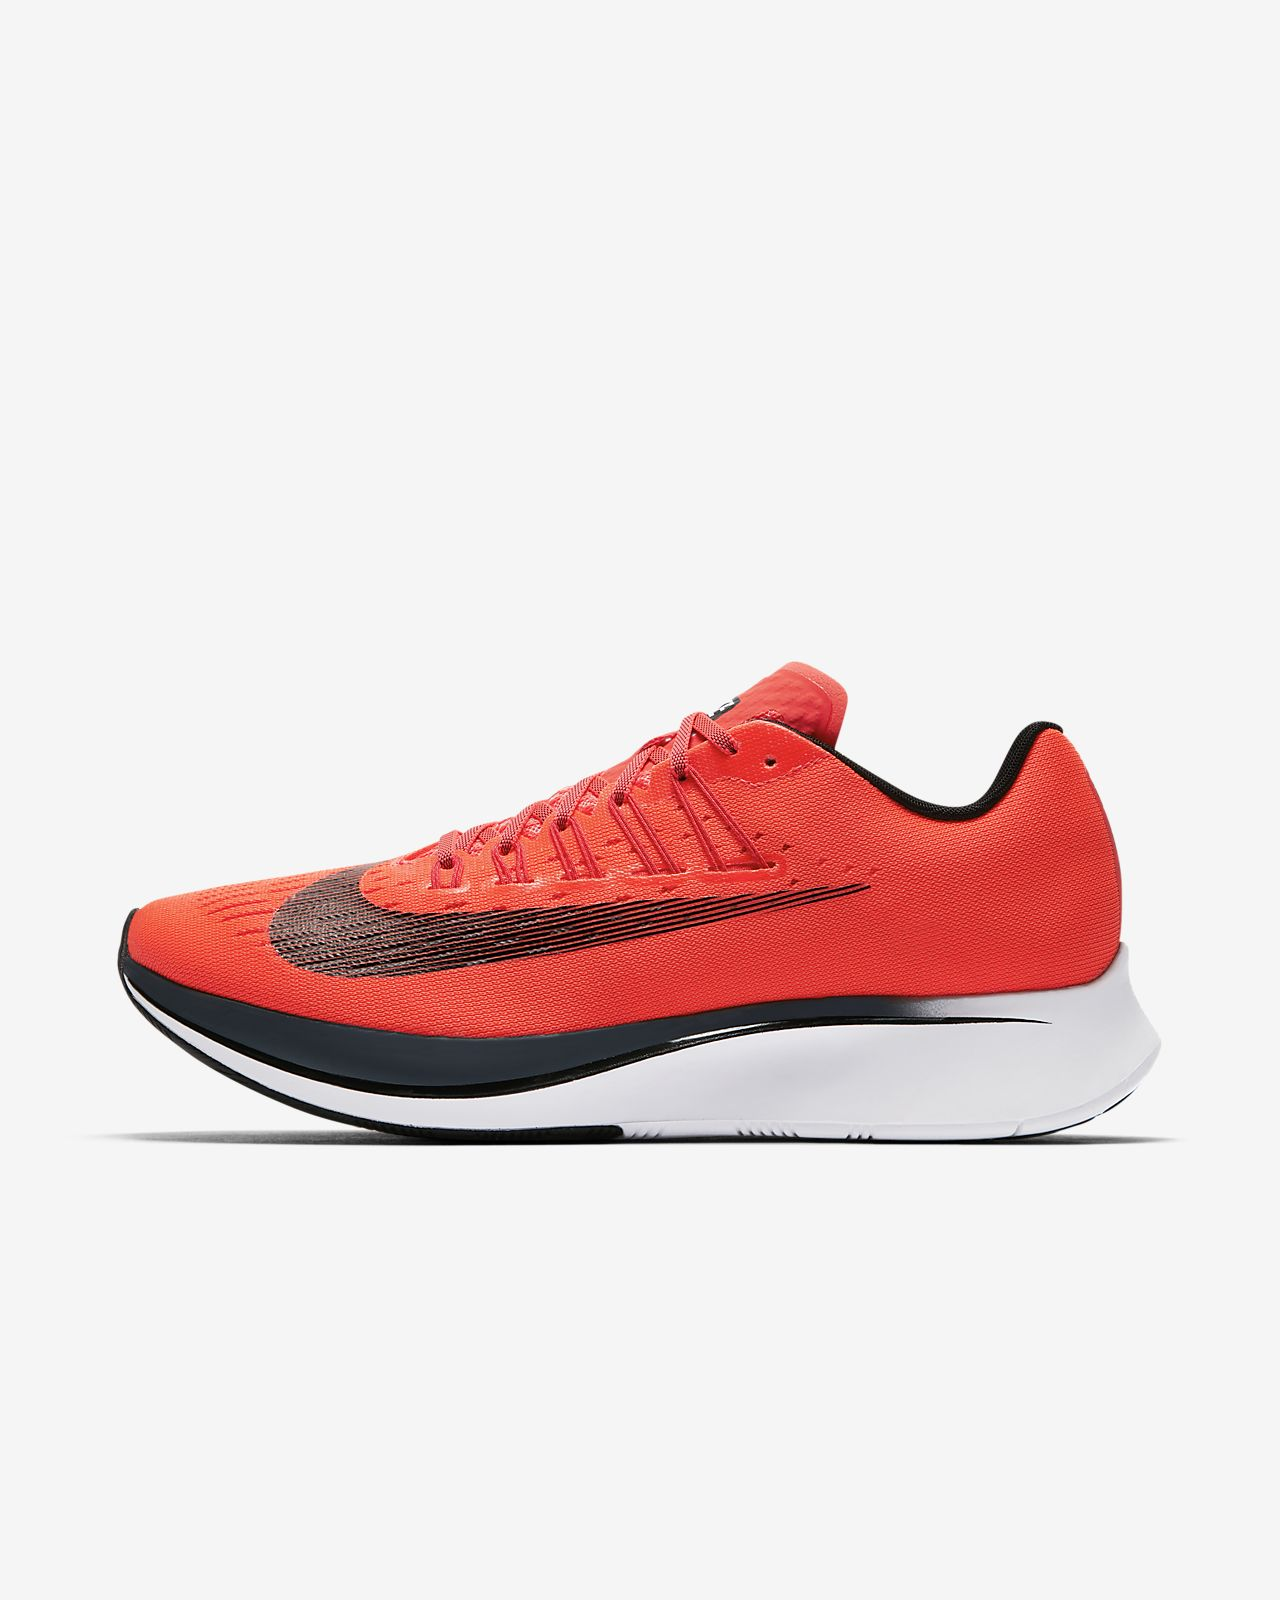 d9d849584e9 Nike Zoom Fly Men s Running Shoe. Nike.com ZA